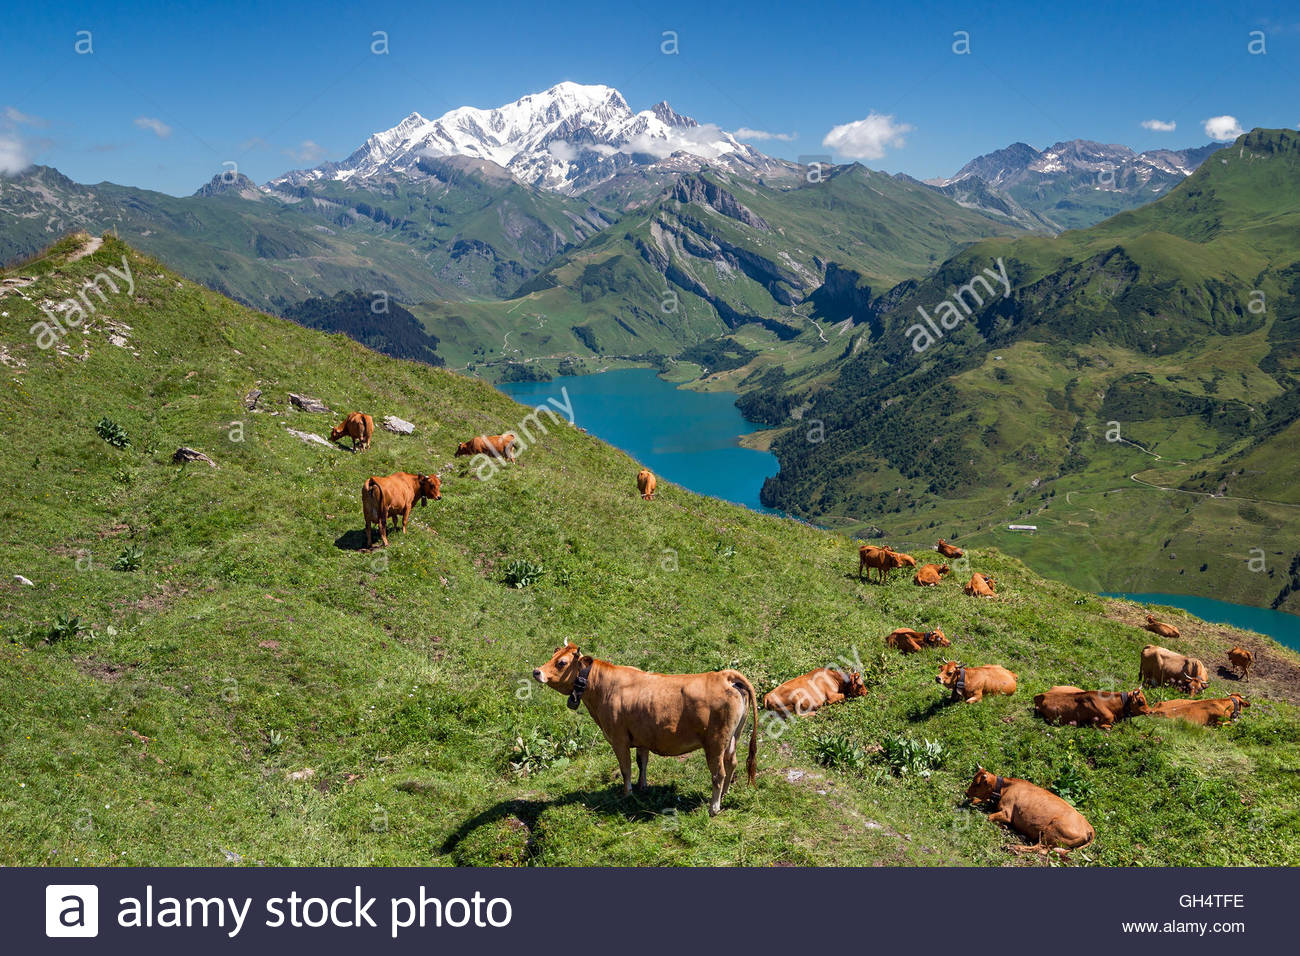 Tarine cows in front of Roselend lake and the Mont-Blanc mountain near Beaufort in Savoie (France) - Stock Image